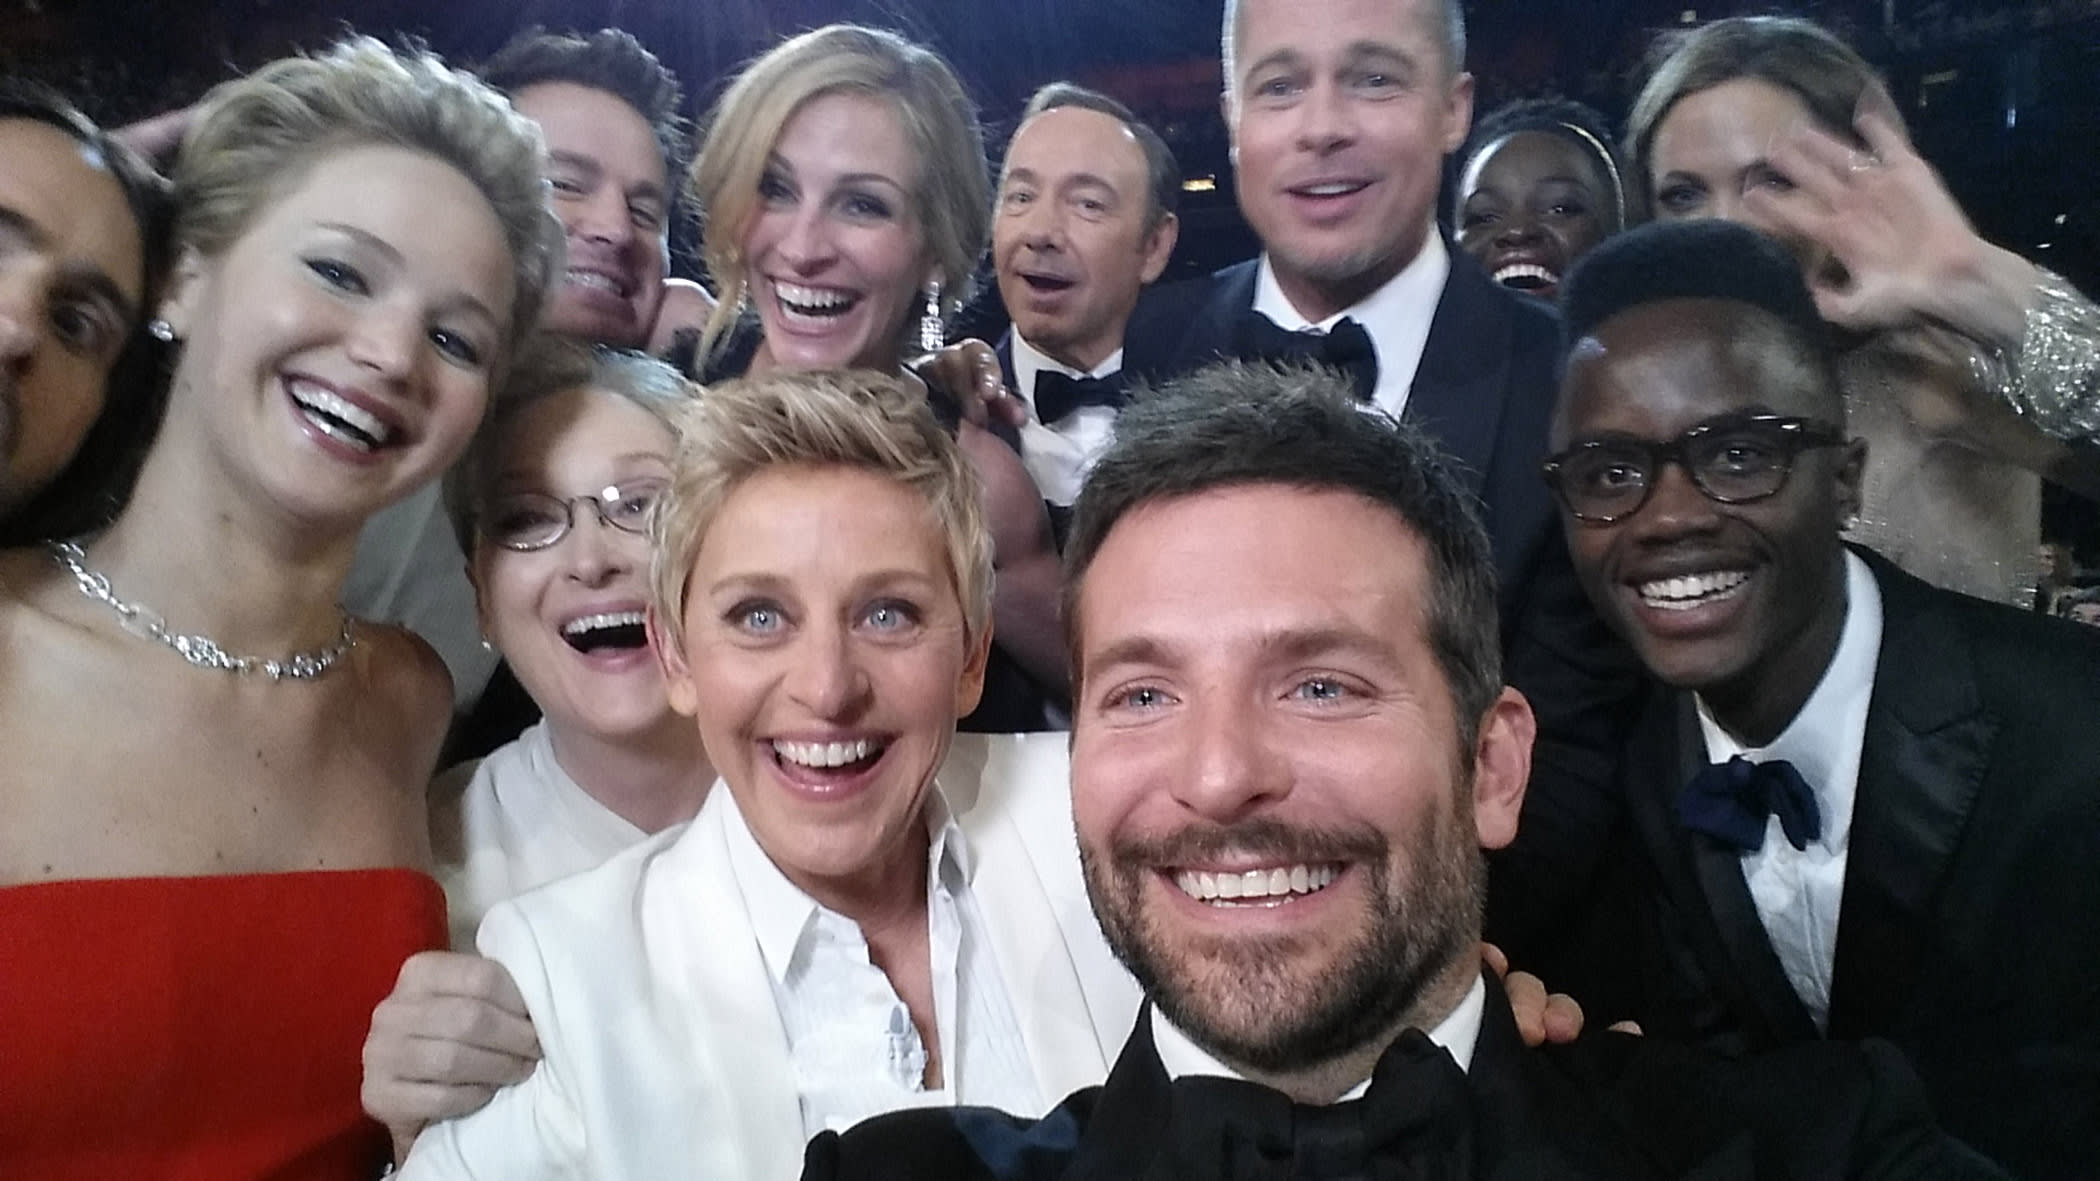 HOLLYWOOD, CA - MARCH 02: HANDOUT – EDITORIAL USE ONLY - In this handout photo provided by Ellen DeGeneres, host Ellen DeGeneres poses for a selfie taken by Bradley Cooper with (clockwise from L-R) Jared Leto, Jennifer Lawrence, Channing Tatum, Meryl Streep, Julia Roberts, Kevin Spacey, Brad Pitt, Lupita Nyong'o, Angelina Jolie, Peter Nyong'o Jr. and Bradley Cooper during the 86th Annual Academy Awards at the Dolby Theatre on March 2, 2014 in Hollywood, California.  (Photo credit Ellen DeGeneres/Twitter via Getty Images)